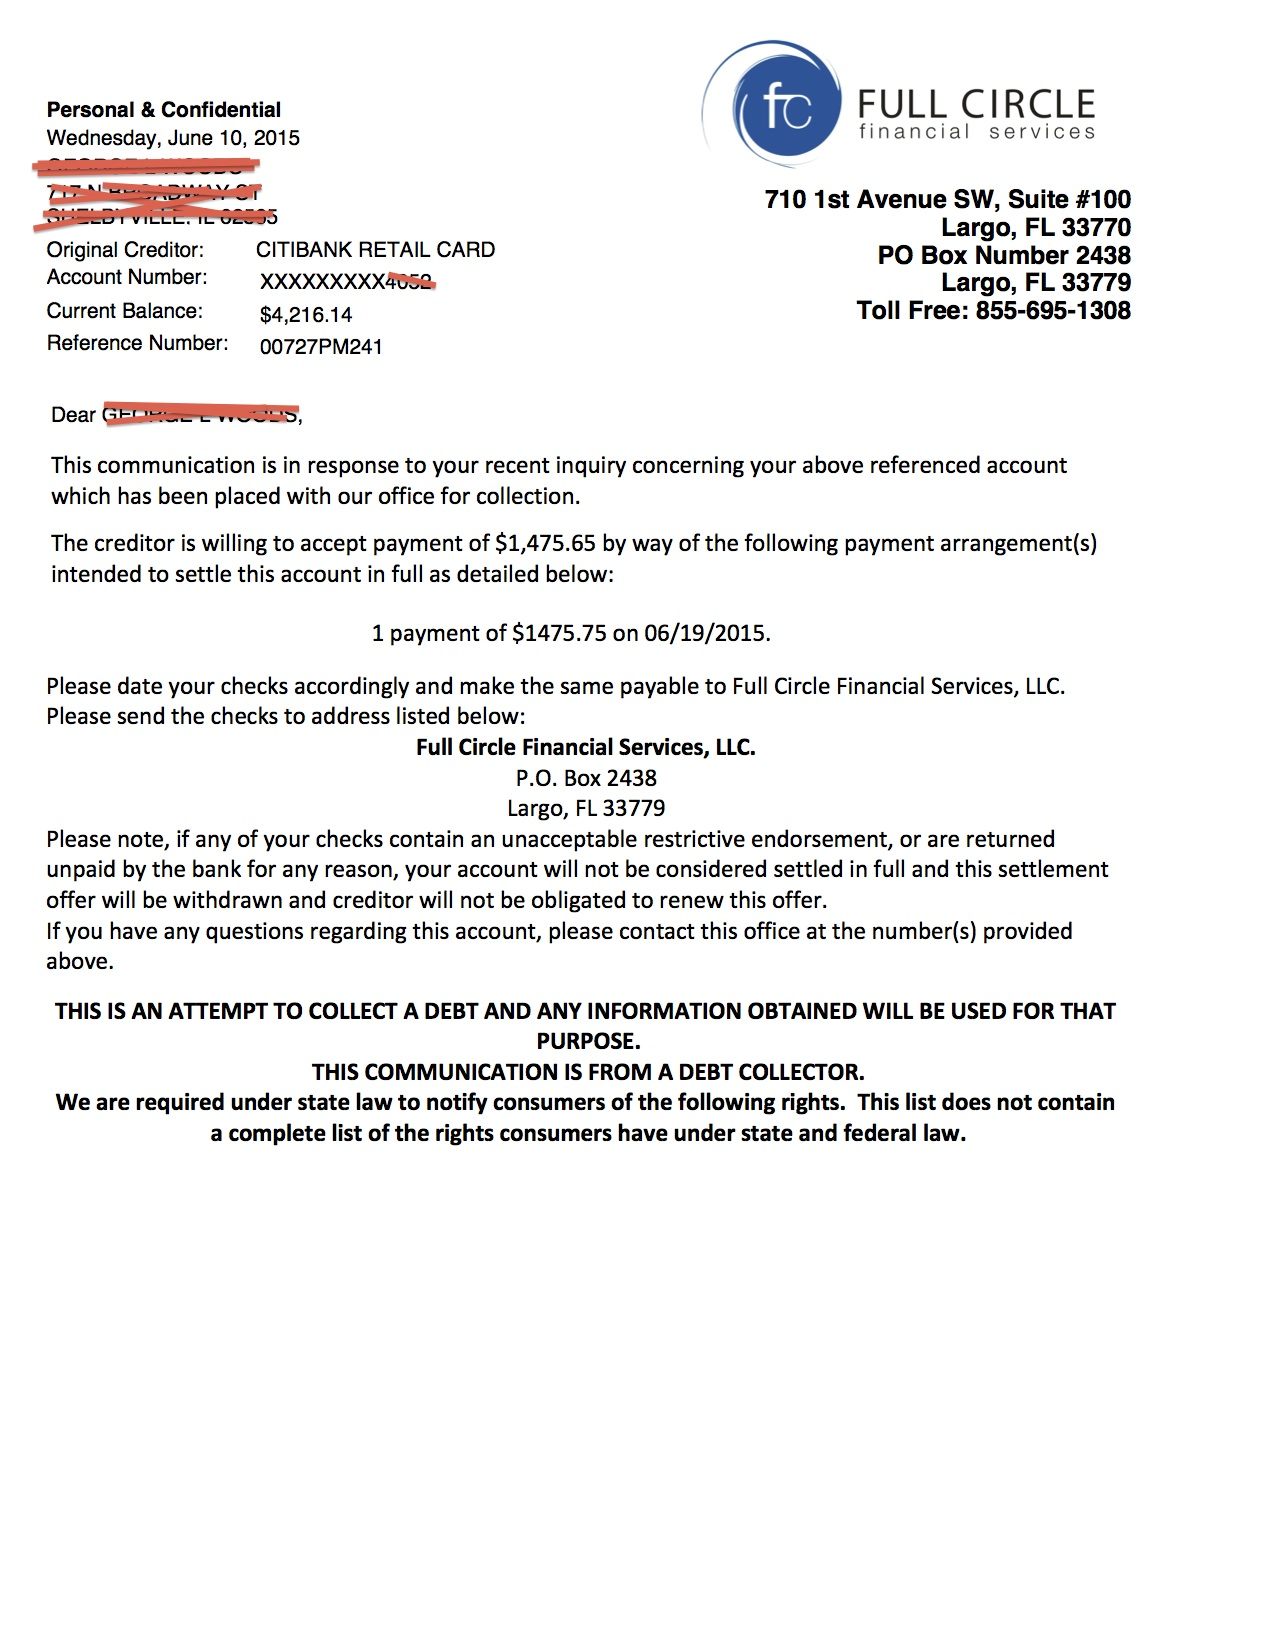 Debt Settlement Chicago Example Letter